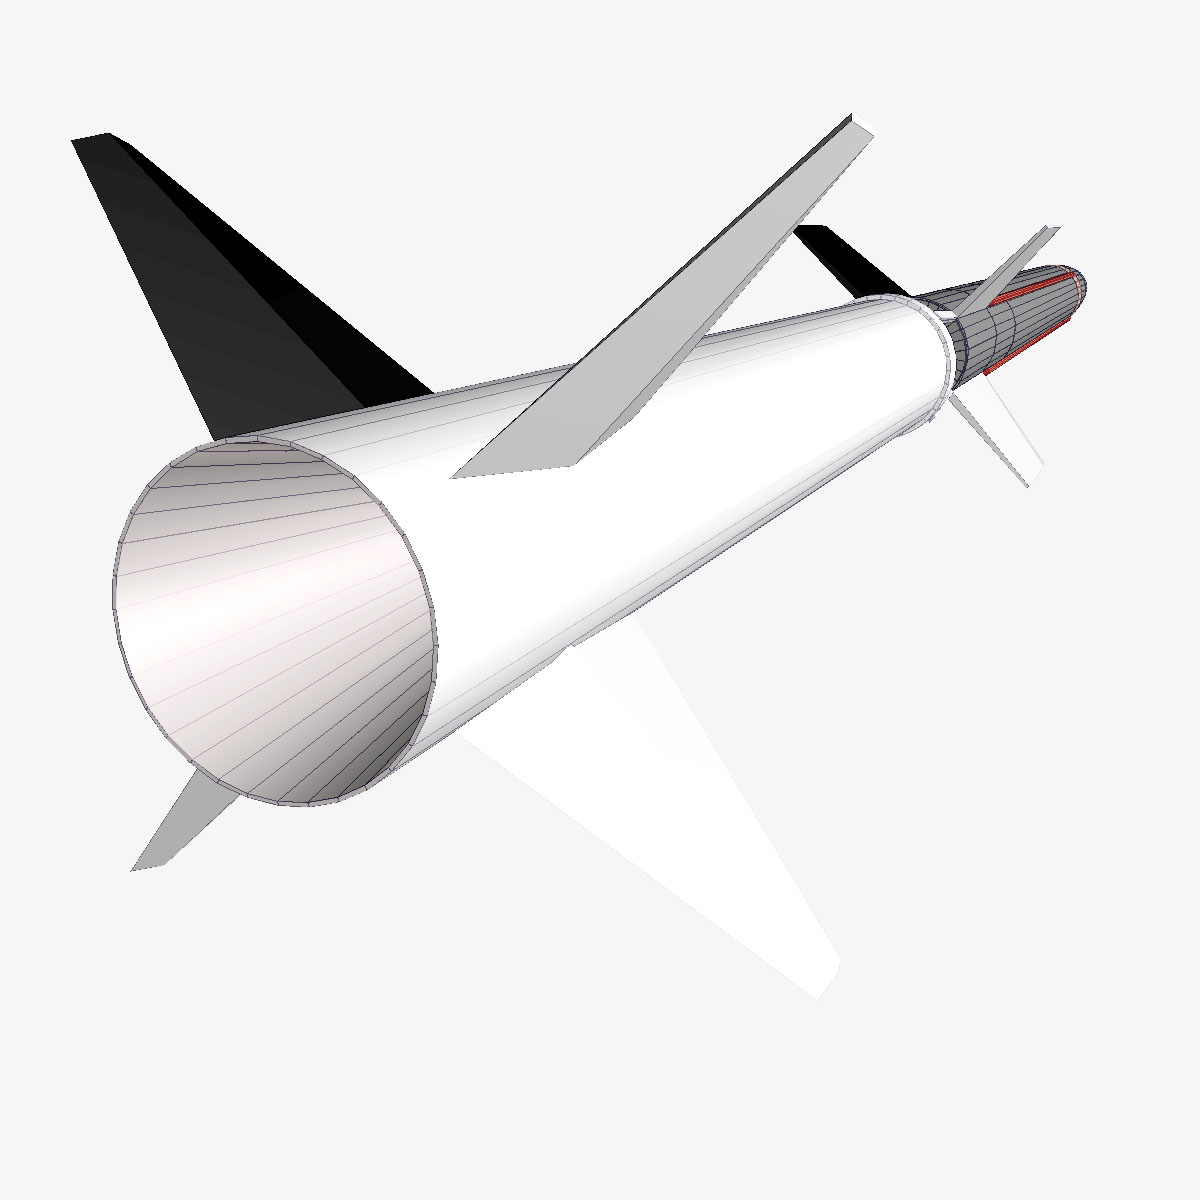 Aerobee 170 Rocket 3d model 3ds dxf fbx blend cob dae X  obj 166047